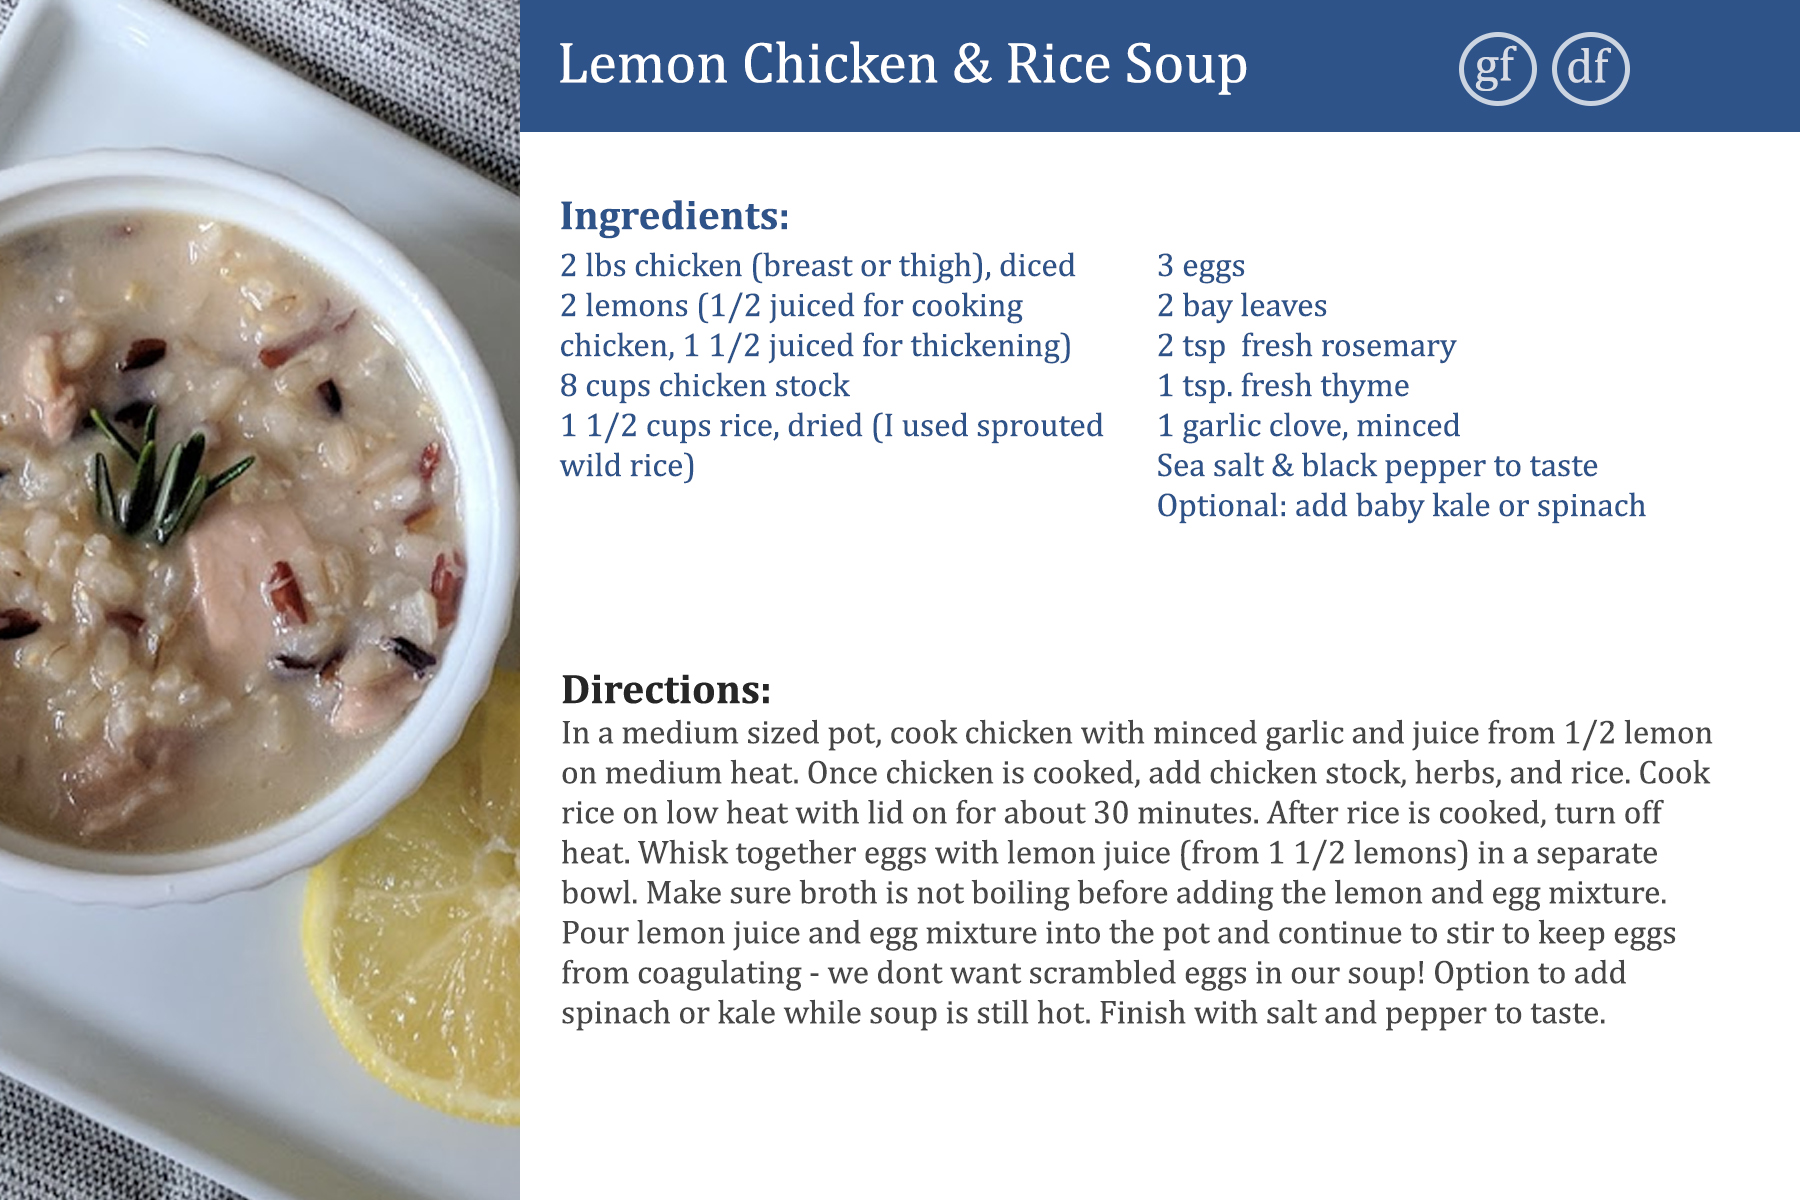 Lemo Chicken & Rice Soup.jpg